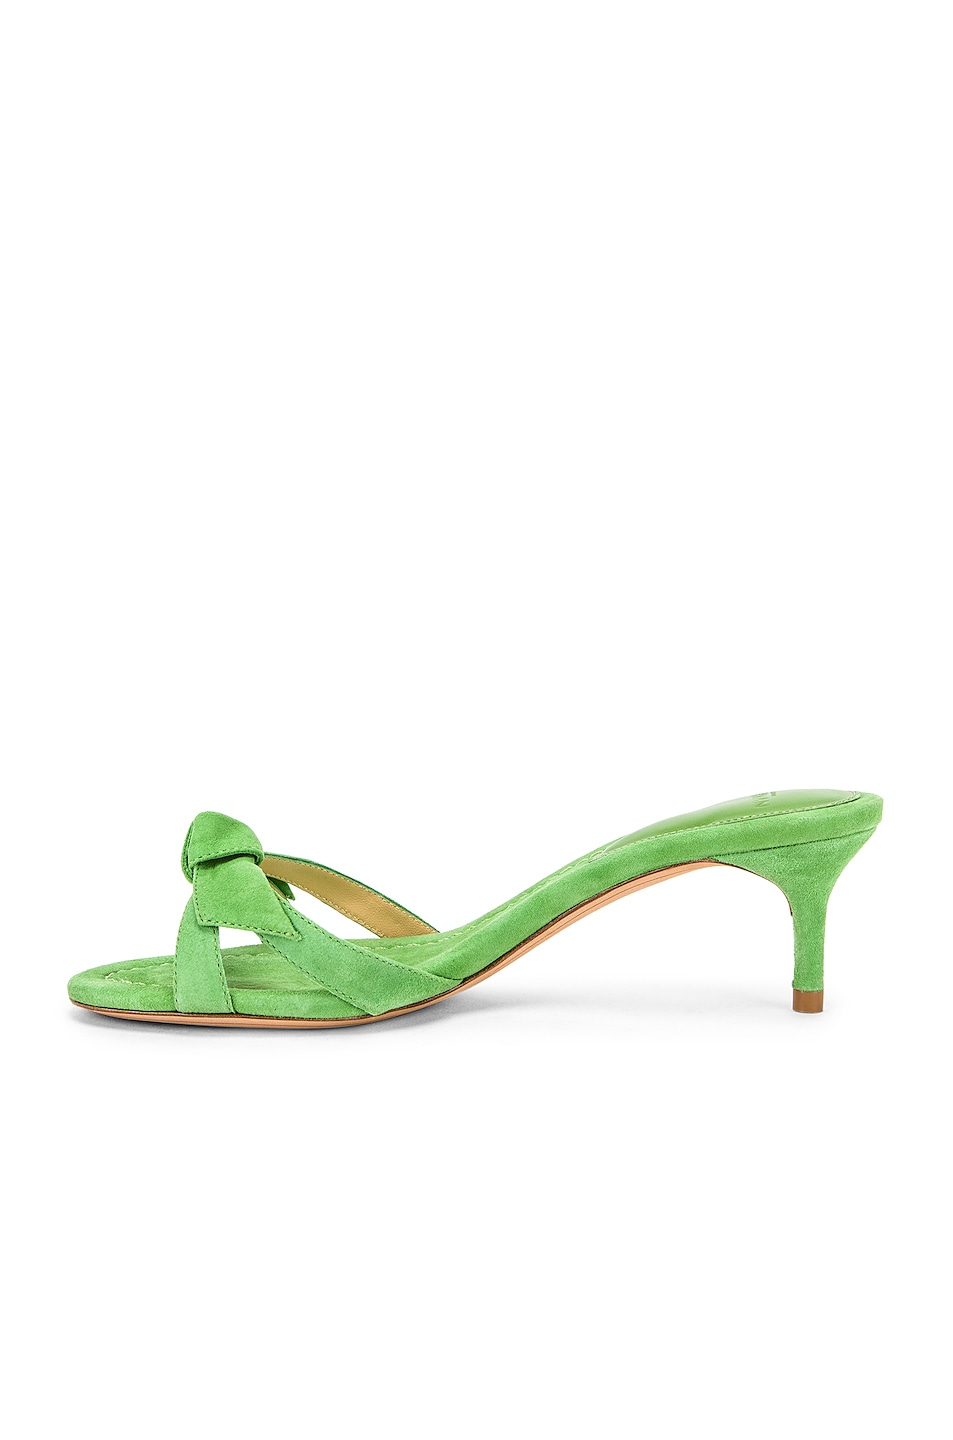 Image 5 of Alexandre Birman Cocktail Clarita Kitten Heel in Kiwi